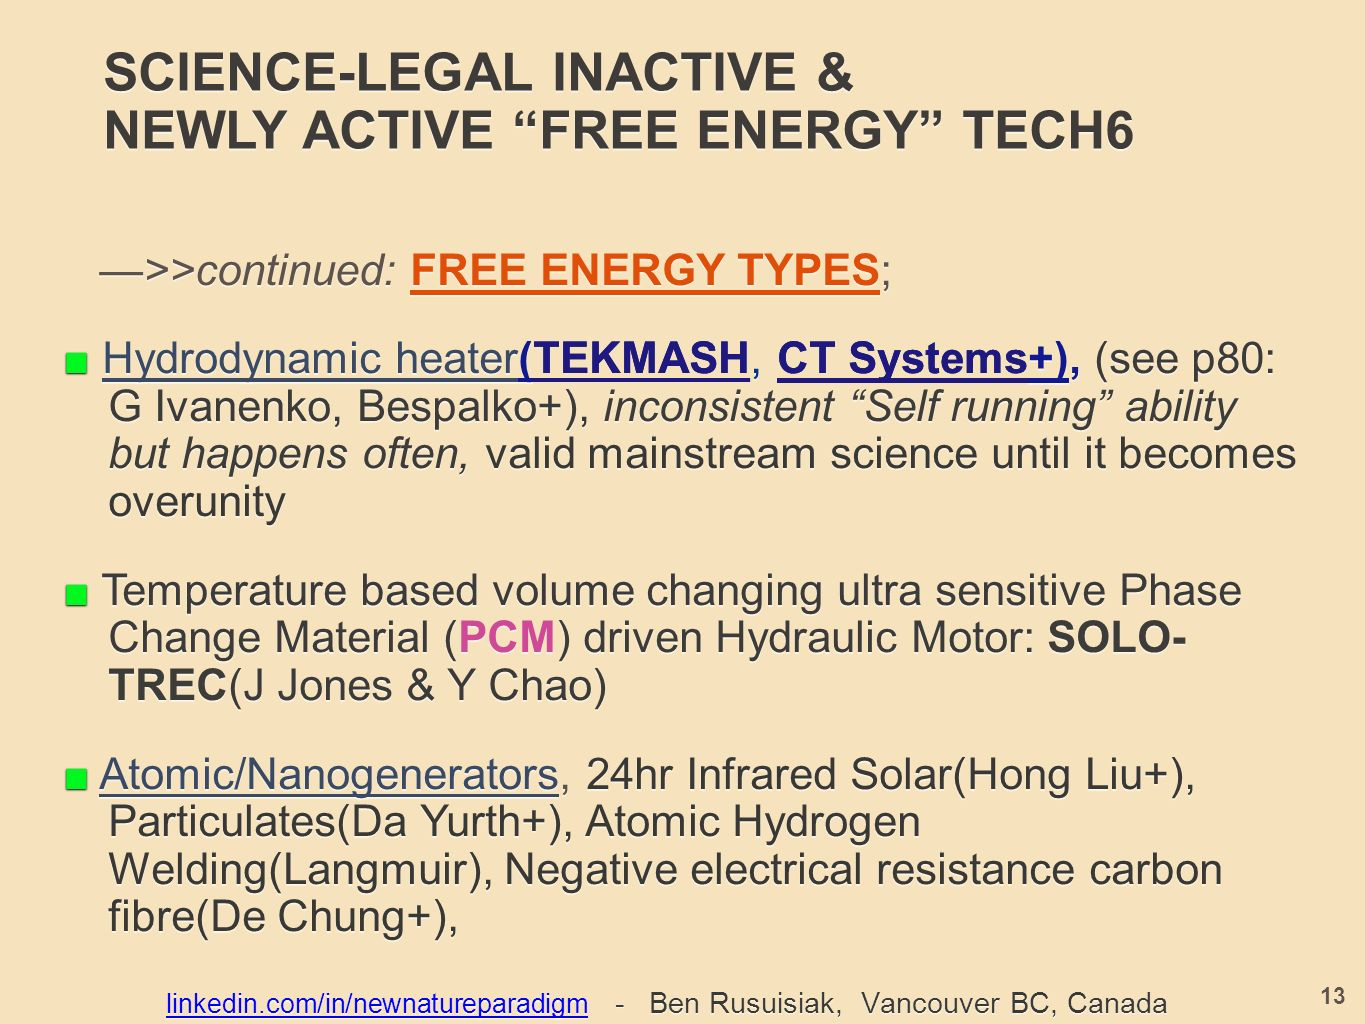 SCIENCE-LEGAL INACTIVE & NEWLY ACTIVE FREE ENERGY TECH6 —>>continued: FREE ENERGY TYPES; —>>continued: FREE ENERGY TYPES; ■ Hydrodynamic heater( TEKMASH, CT Systems +), (see p80: G Ivanenko, Bespalko+), inconsistent Self running ability but happens often, valid mainstream science until it becomes overunity ■ Hydrodynamic heater(TEKMASH, CT Systems+), (see p80: G Ivanenko, Bespalko+), inconsistent Self running ability but happens often, valid mainstream science until it becomes overunity ■ Temperature based volume changing ultra sensitive Phase Change Material (PCM) driven Hydraulic Motor: SOLO- TREC(J Jones & Y Chao) ■ Atomic/Nanogenerators, 24hr Infrared Solar(Hong Liu+), Particulates(Da Yurth+), Atomic Hydrogen Welding(Langmuir), Negative electrical resistance carbon fibre(De Chung+), 13 linkedin.com/in/newnatureparadigmlinkedin.com/in/newnatureparadigm - Ben Rusuisiak, Vancouver BC, Canada linkedin.com/in/newnatureparadigm